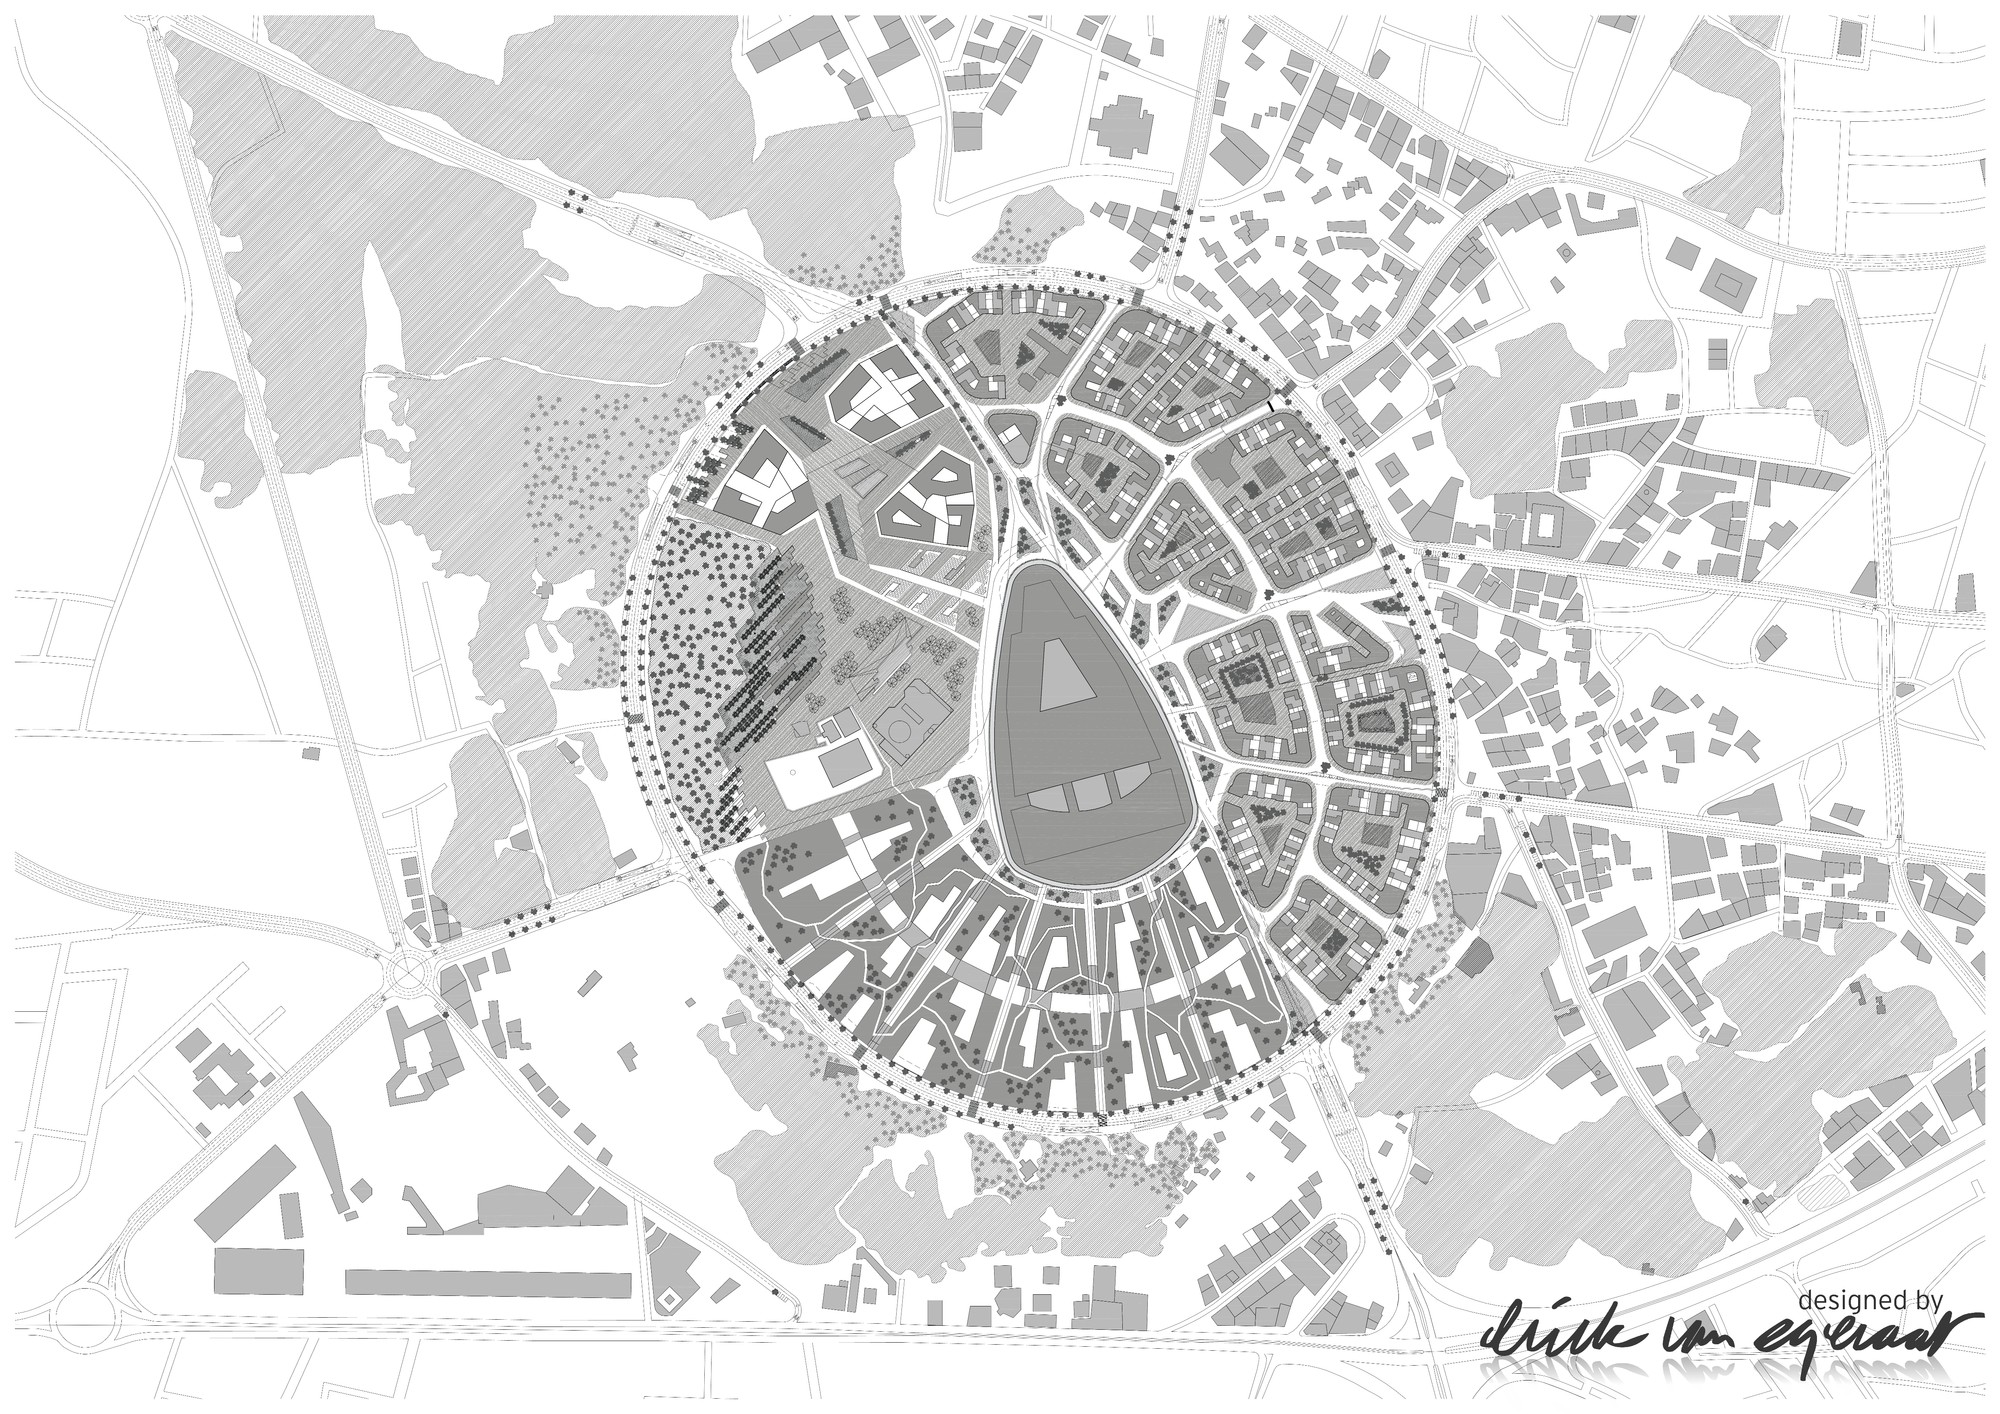 Site Plan. Image © (designed by) Erick van Egeraat BV